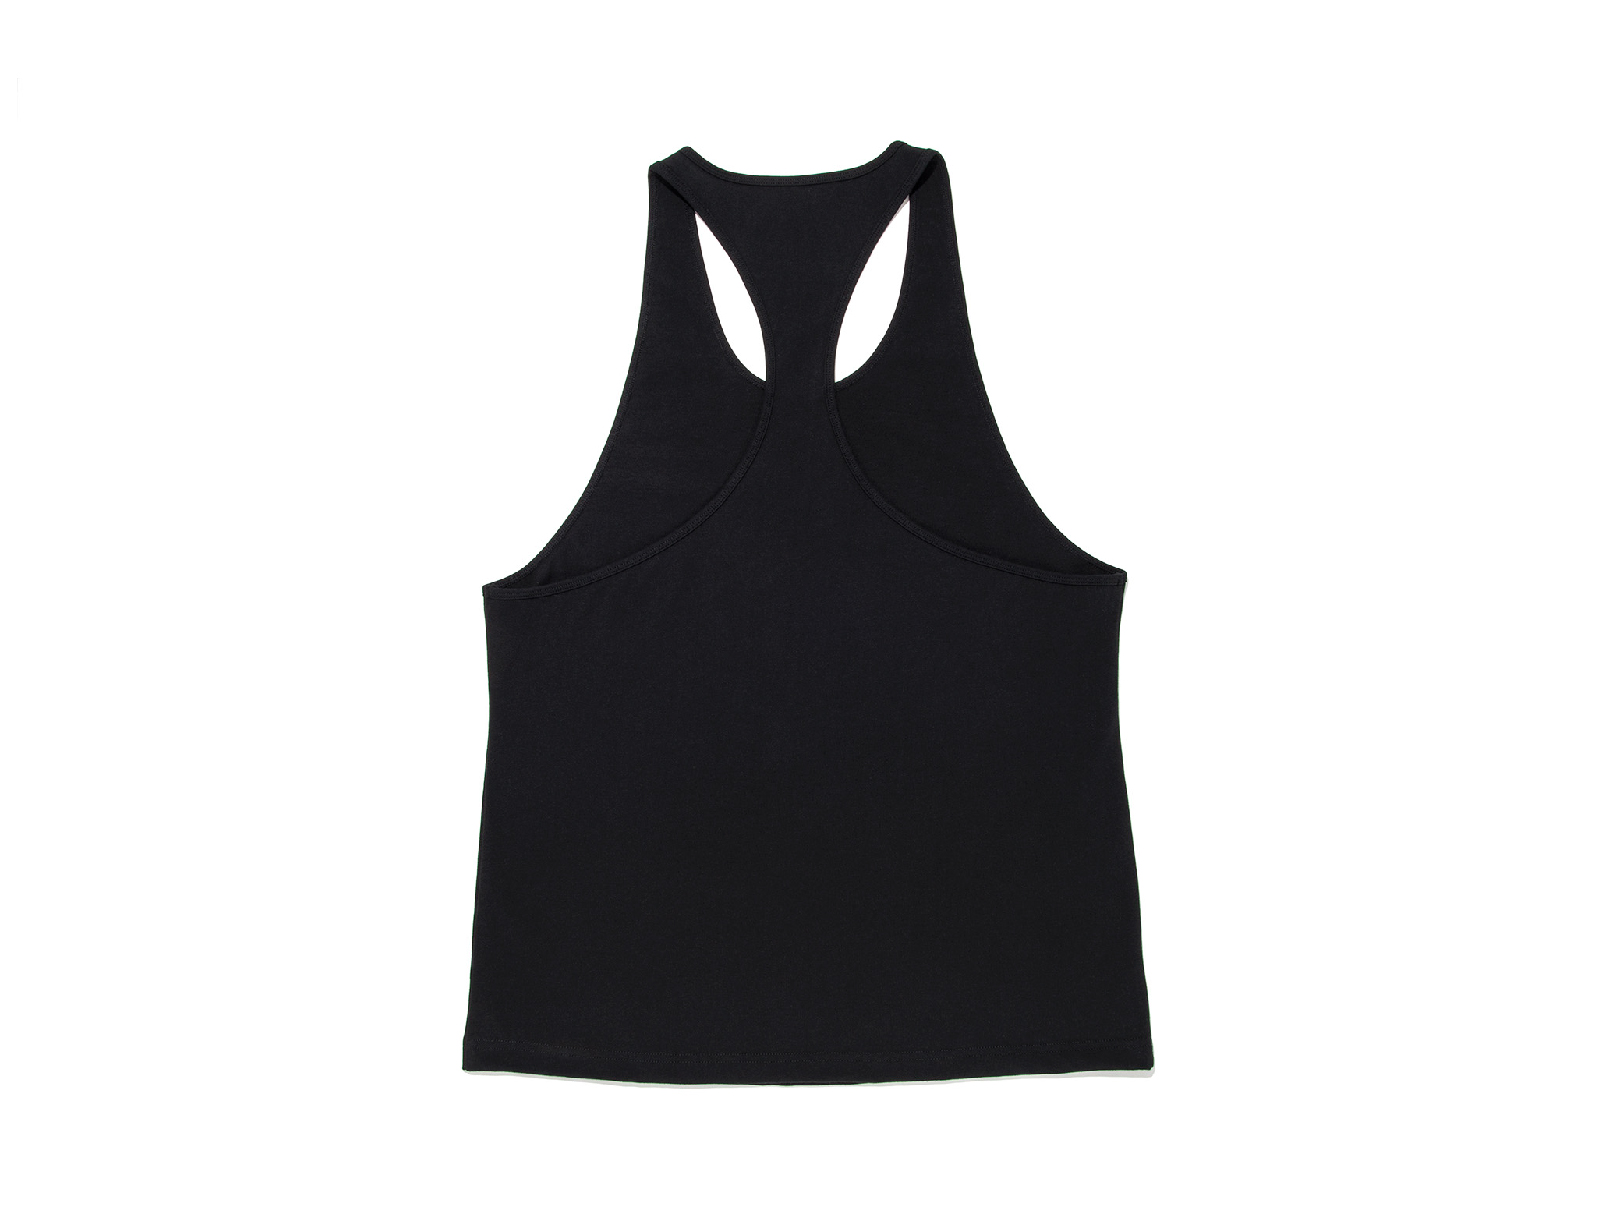 COTTON ONE POINT LOGO STRINGER